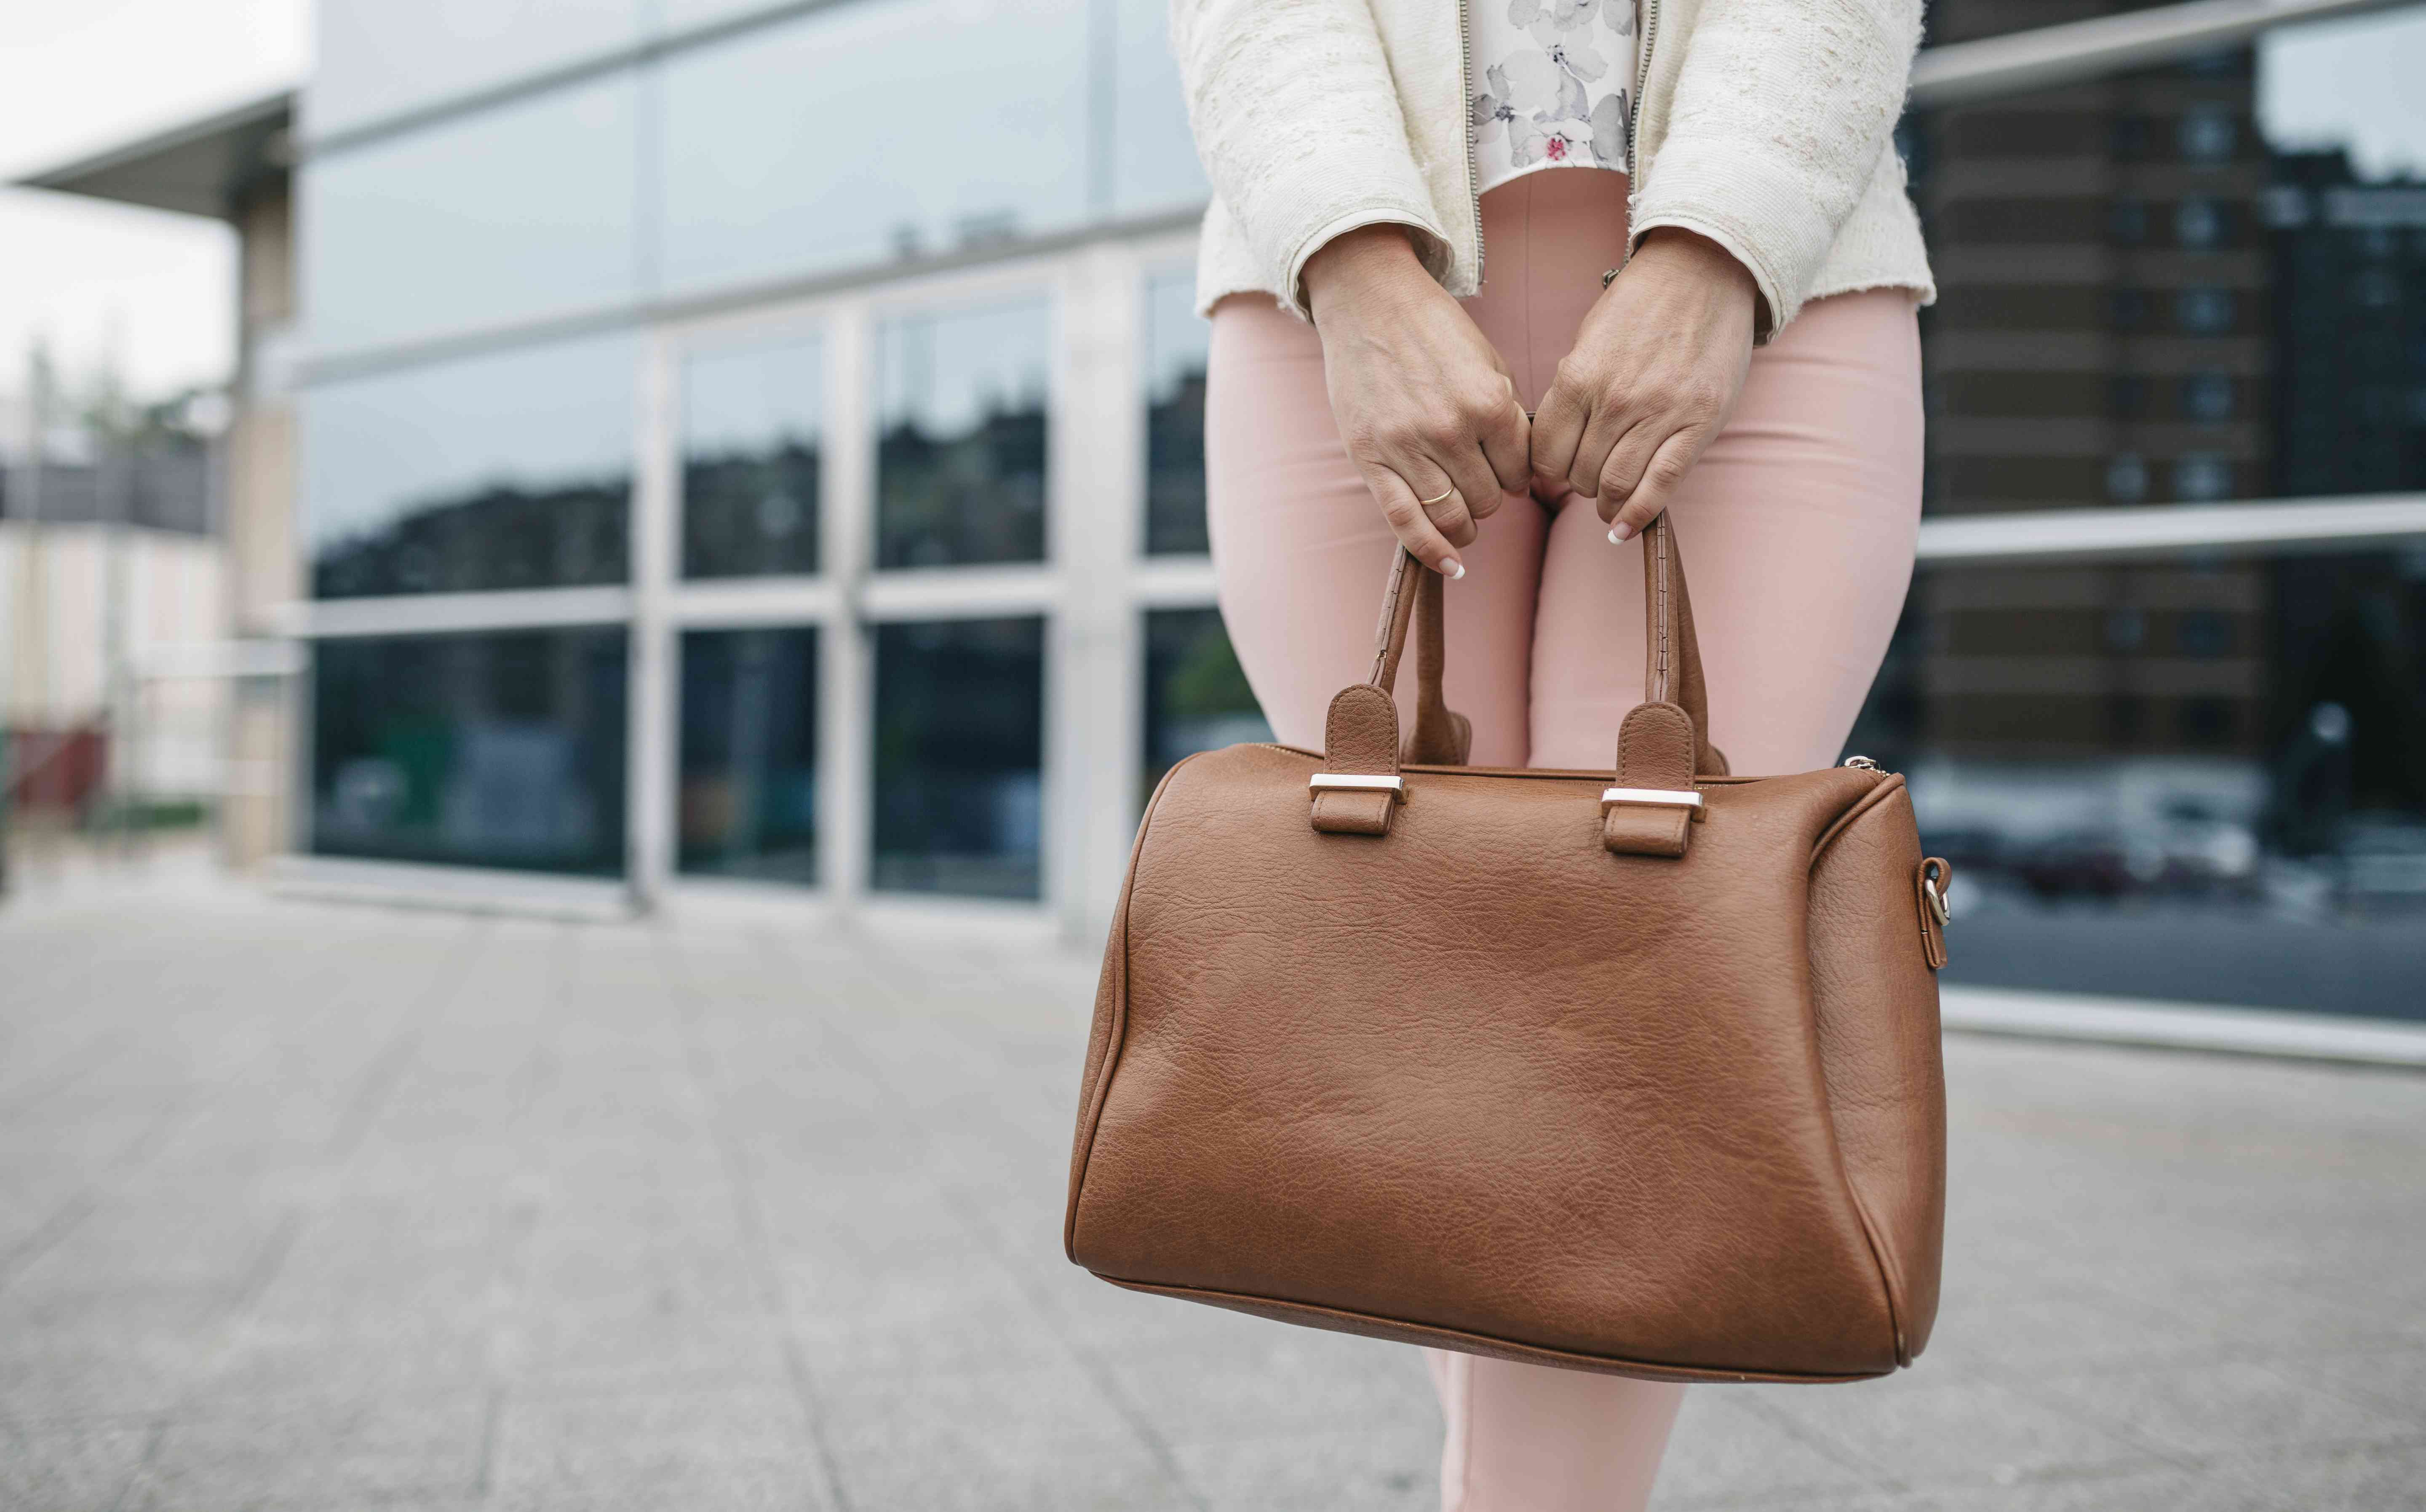 Woman holding large handbag in front of an office